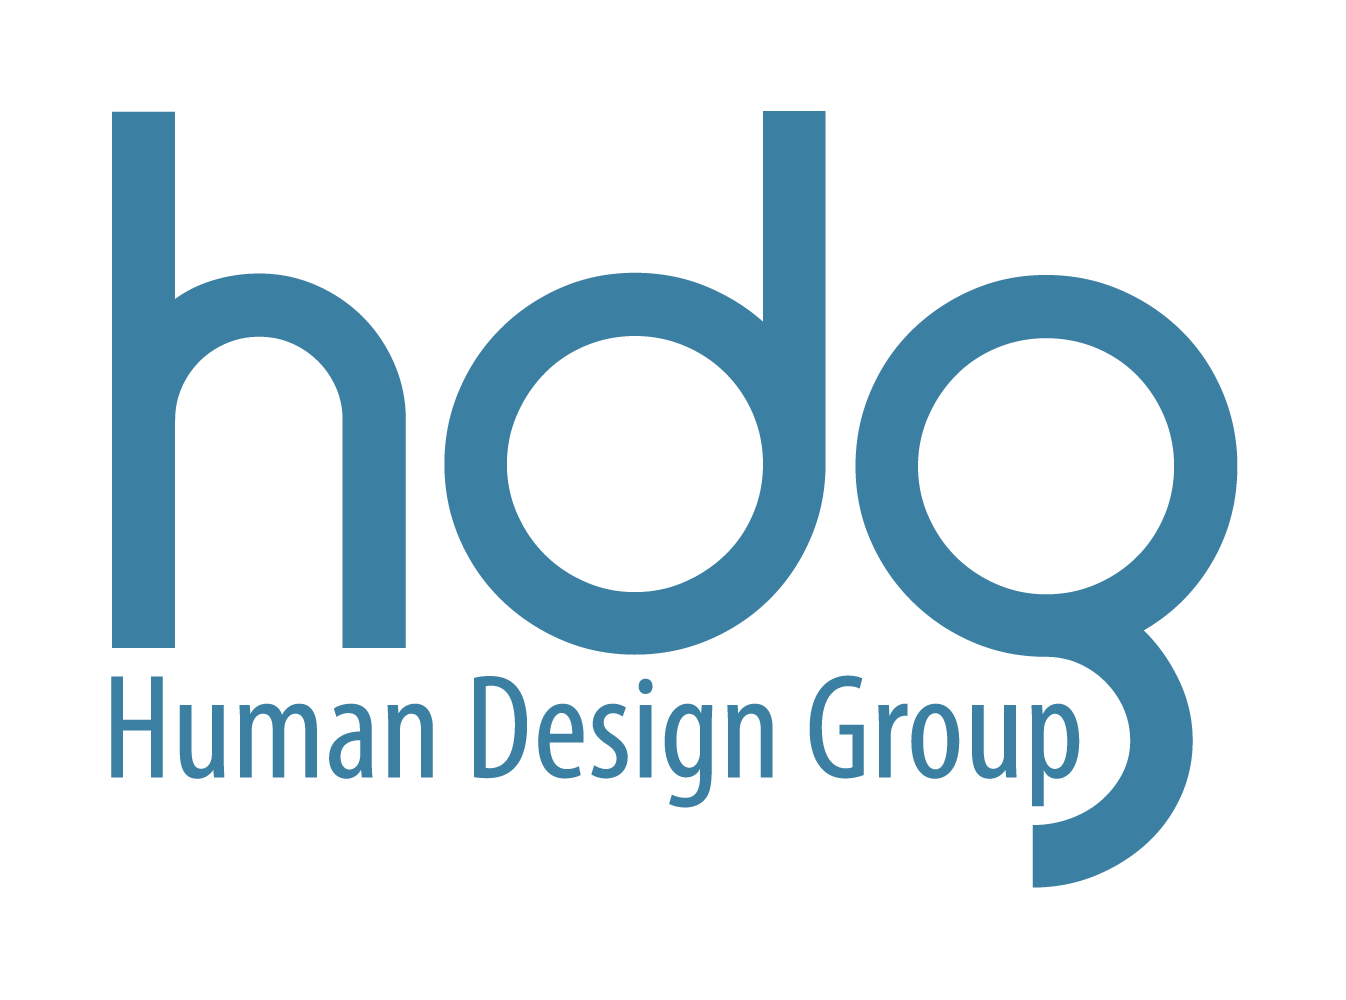 Human Design Group - Recrutement